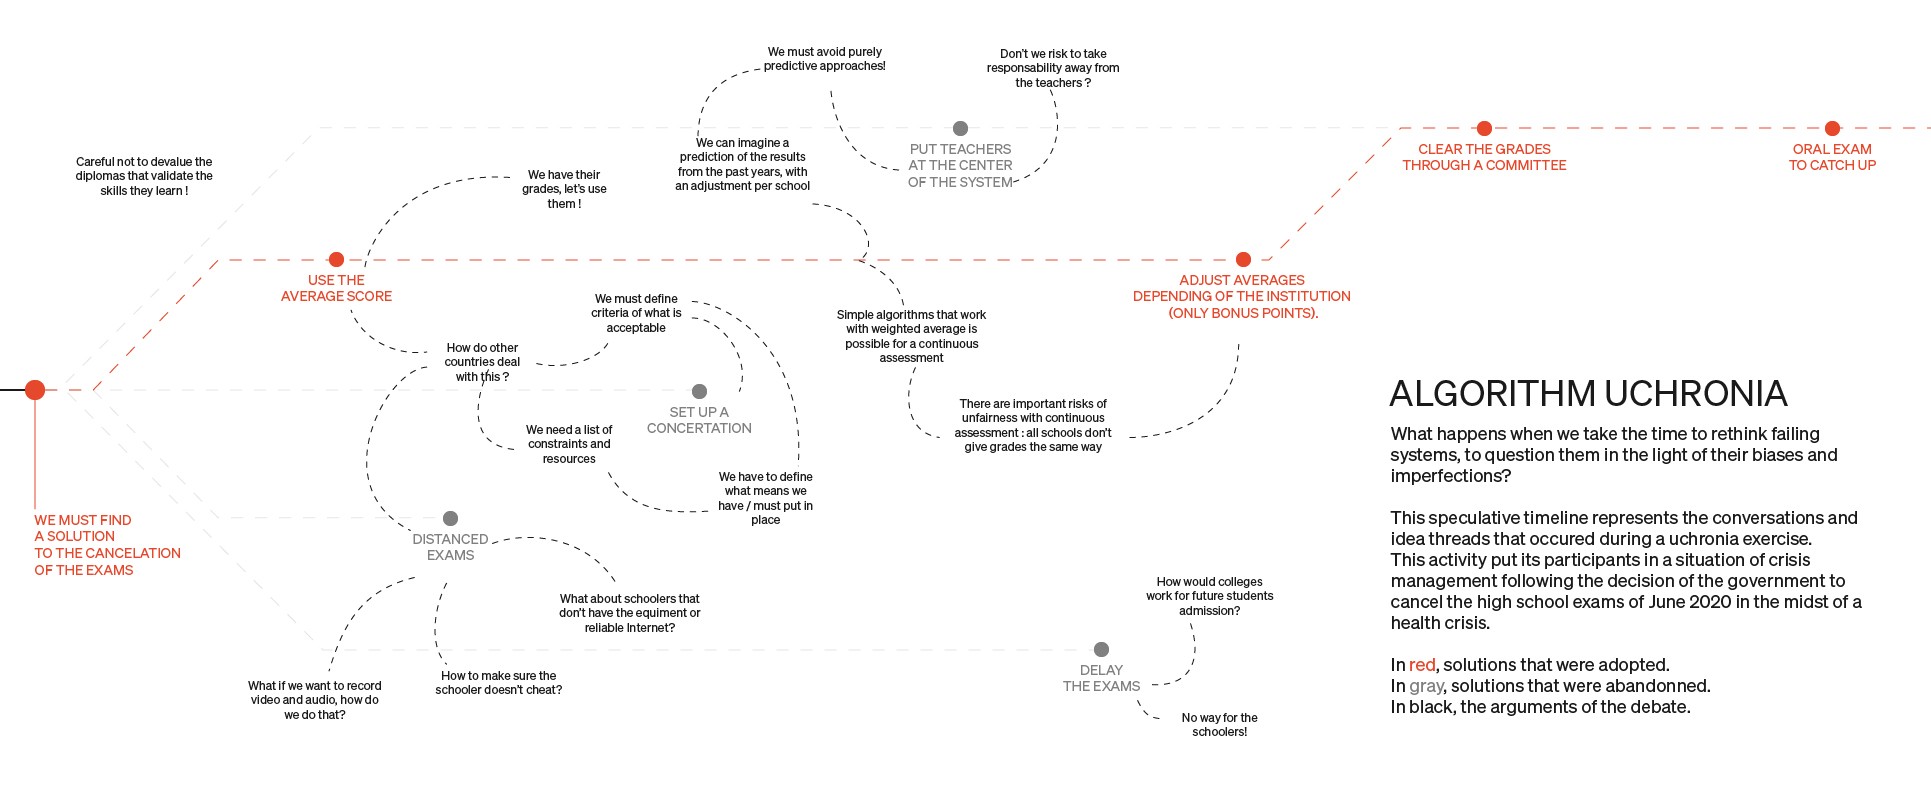 Uchronian timeline, highlighting the alternative choices leading to a new algorithm